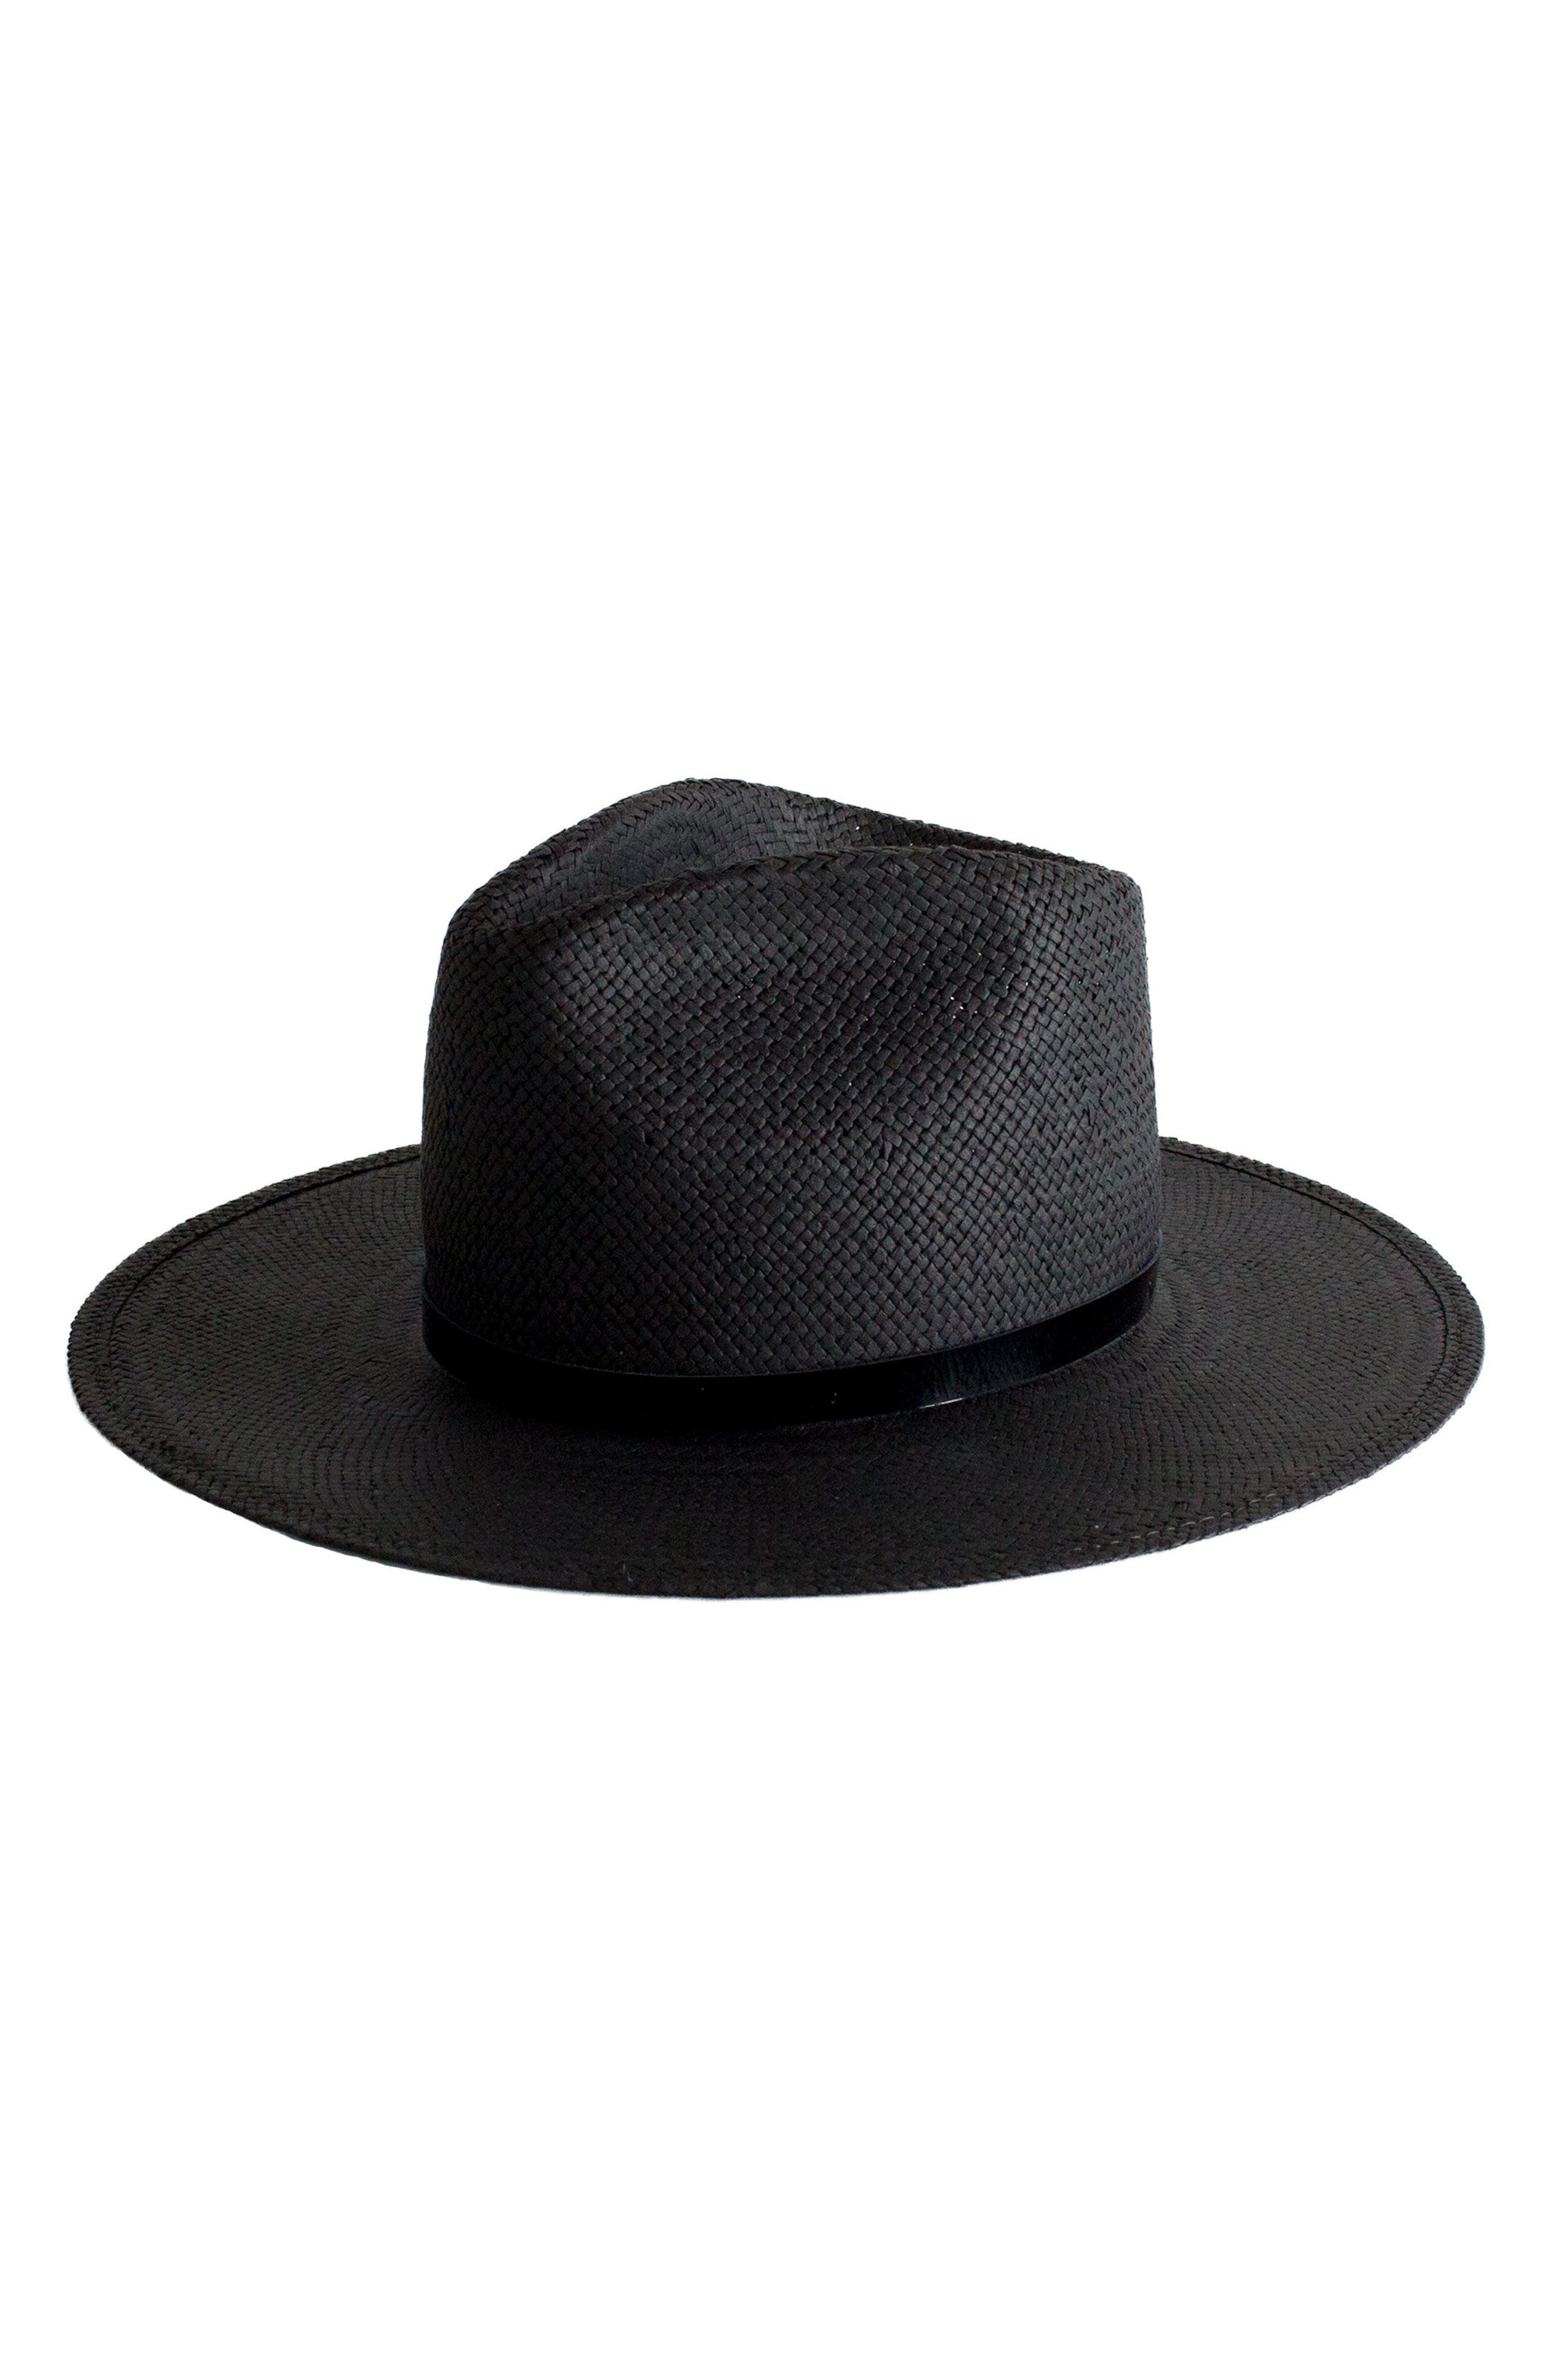 Lex Packable Straw Fedora,                             Main thumbnail 1, color,                             001